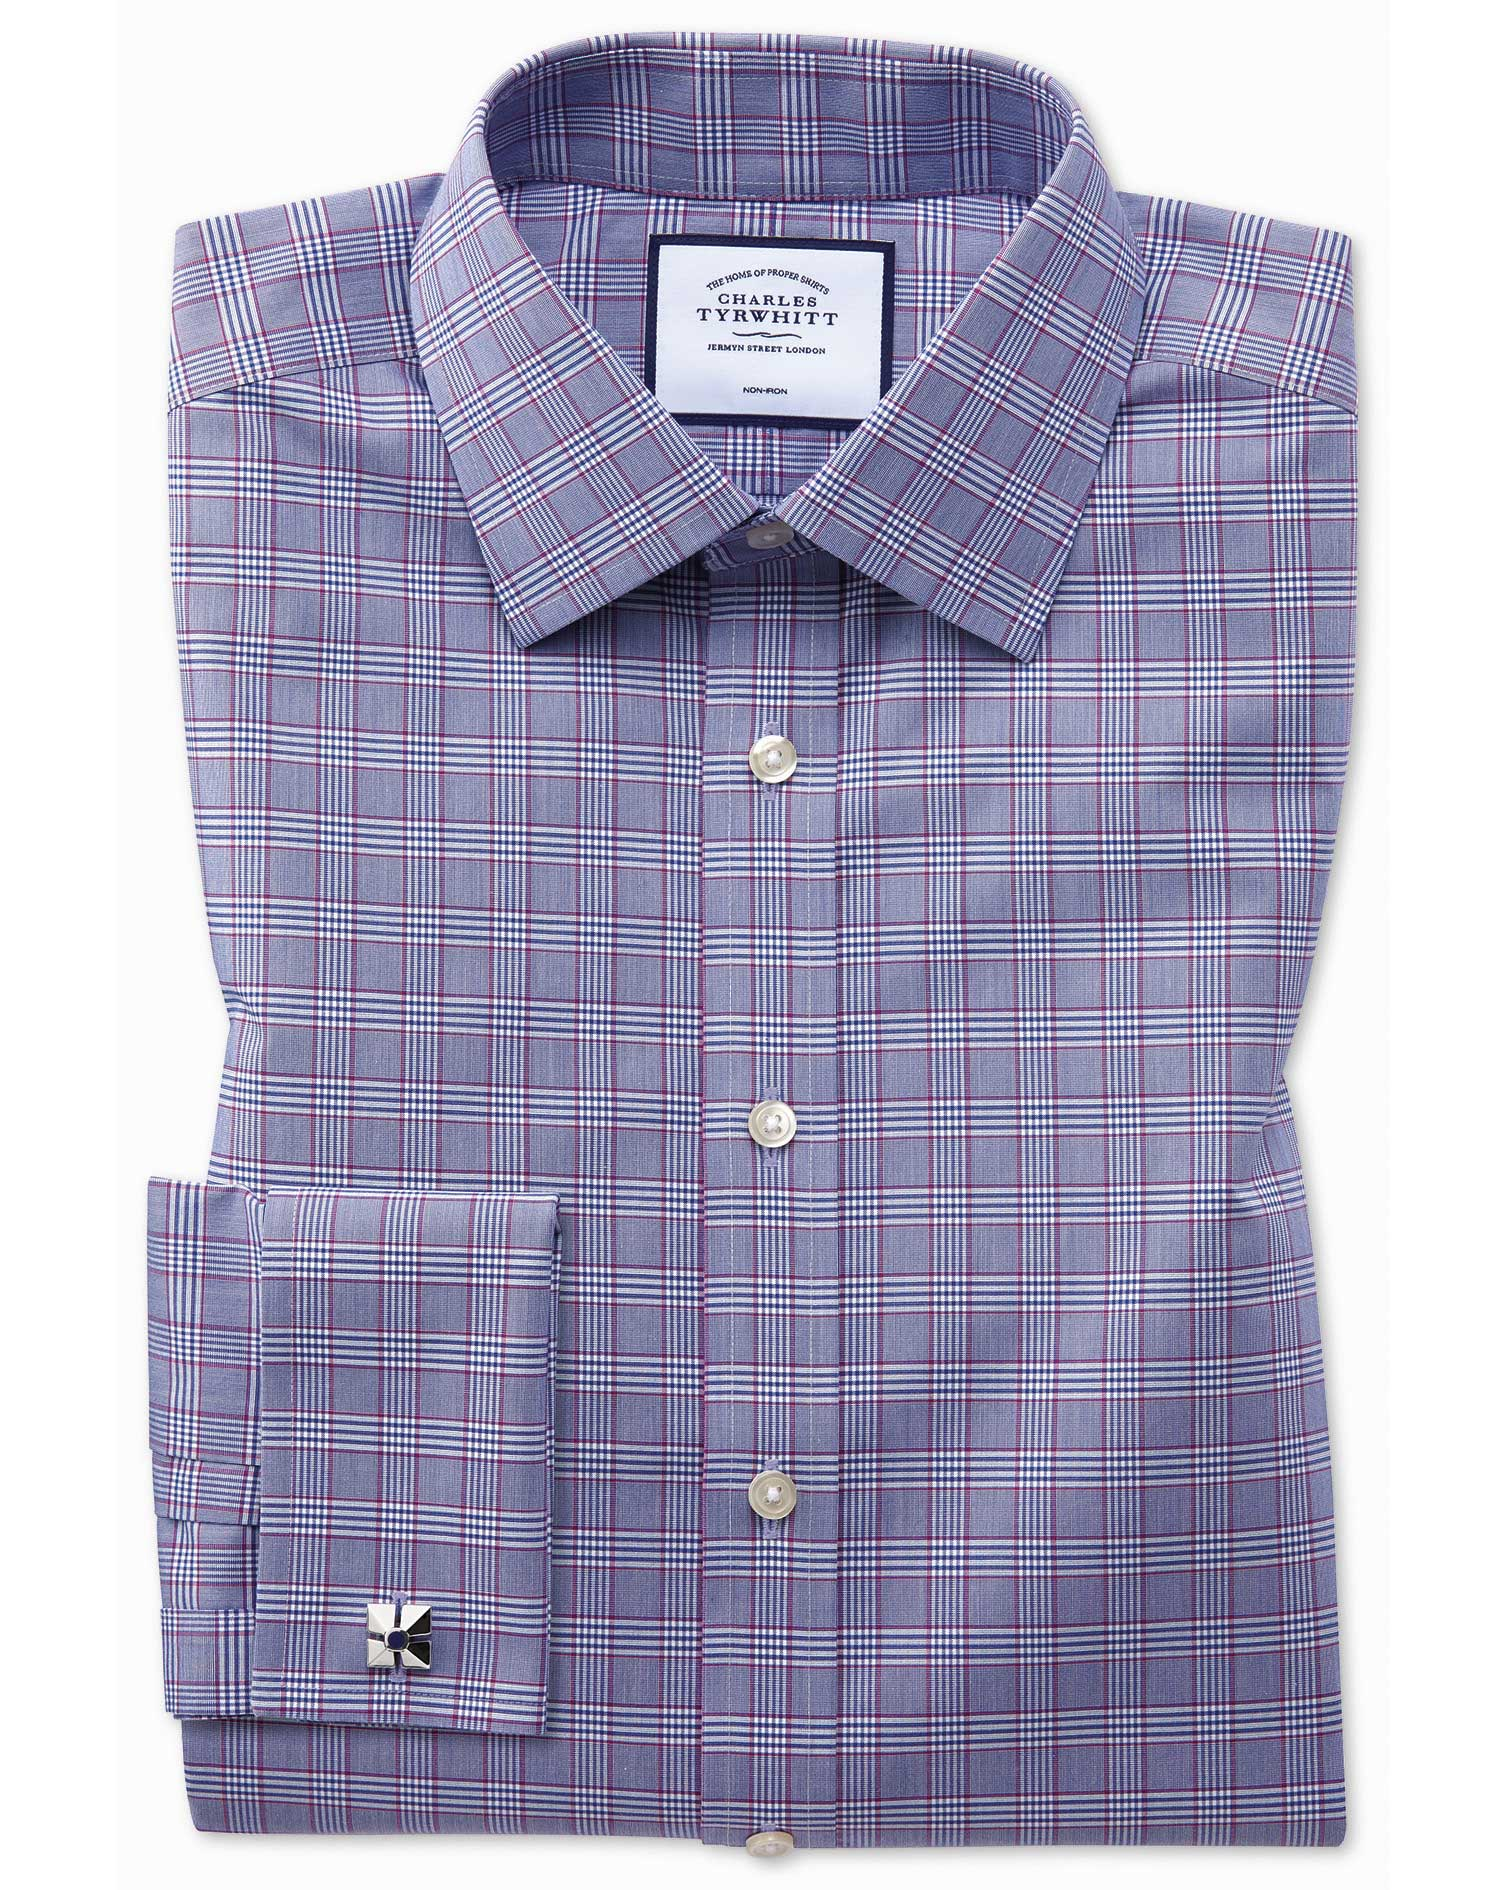 Classic Fit Non-Iron Berry and Navy Prince Of Wales Check Cotton Formal Shirt Double Cuff Size 17/34 by Charles Tyrwhitt from Charles Tyrwhitt